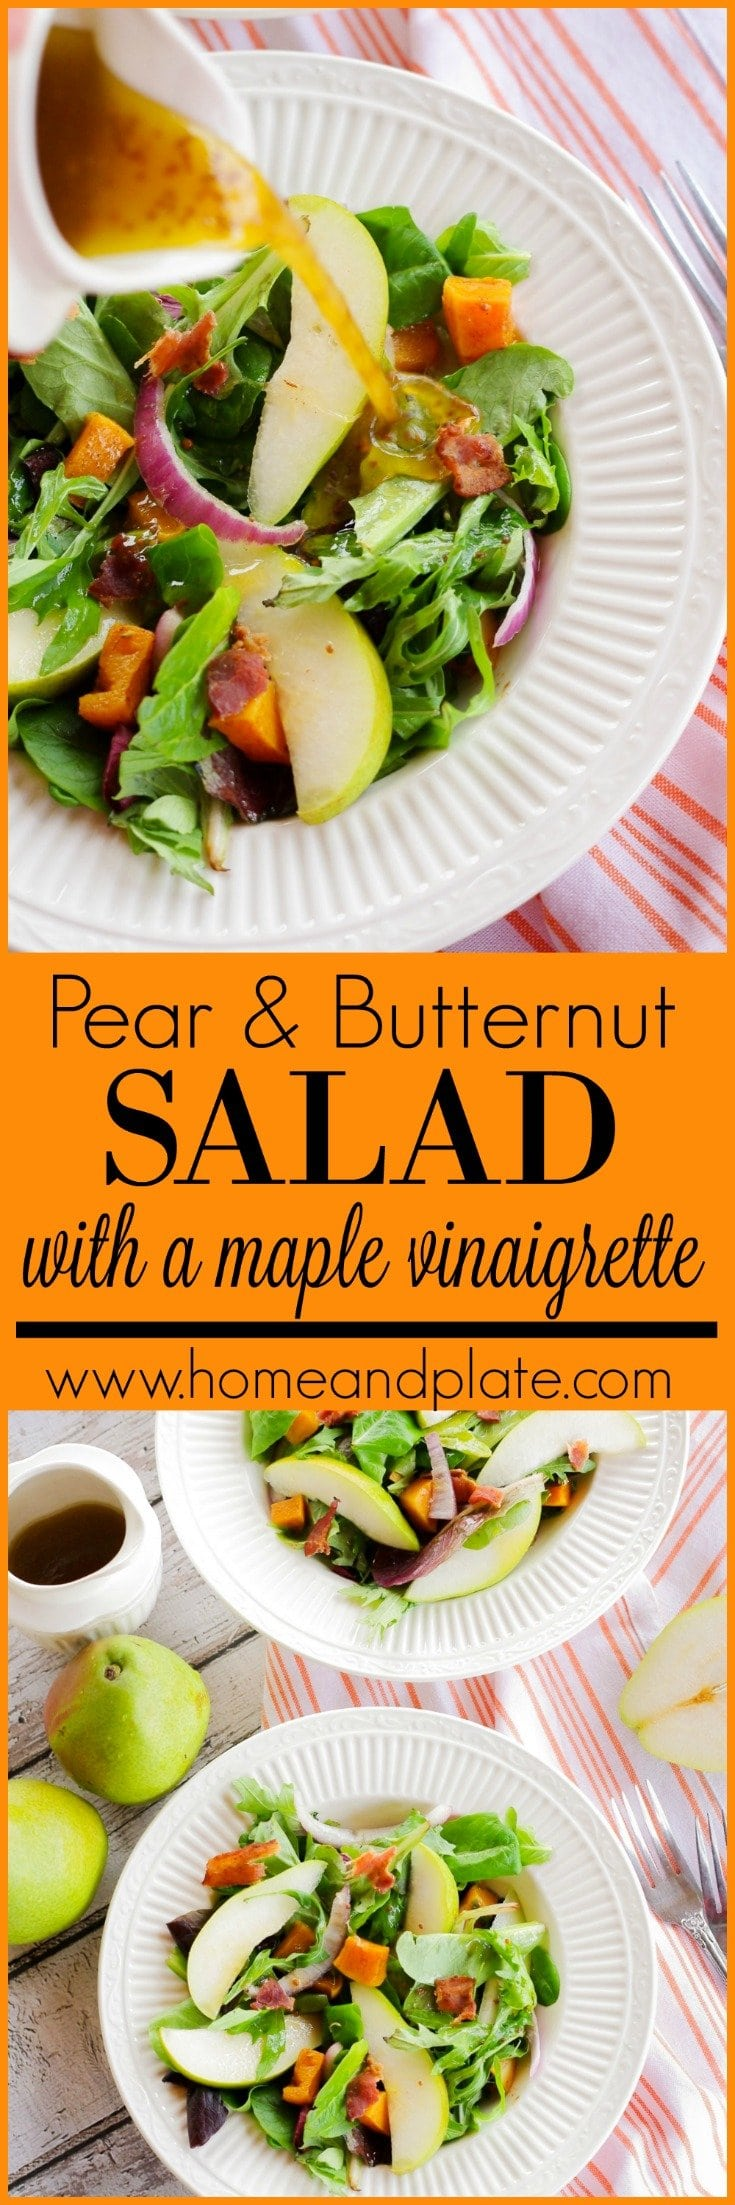 Pear and Butternut Squash Salad with a Maple Balsamic Vinaigrette | www.homeandplate.com |This pear and butternut squash salad is a favorite winter side dish and it